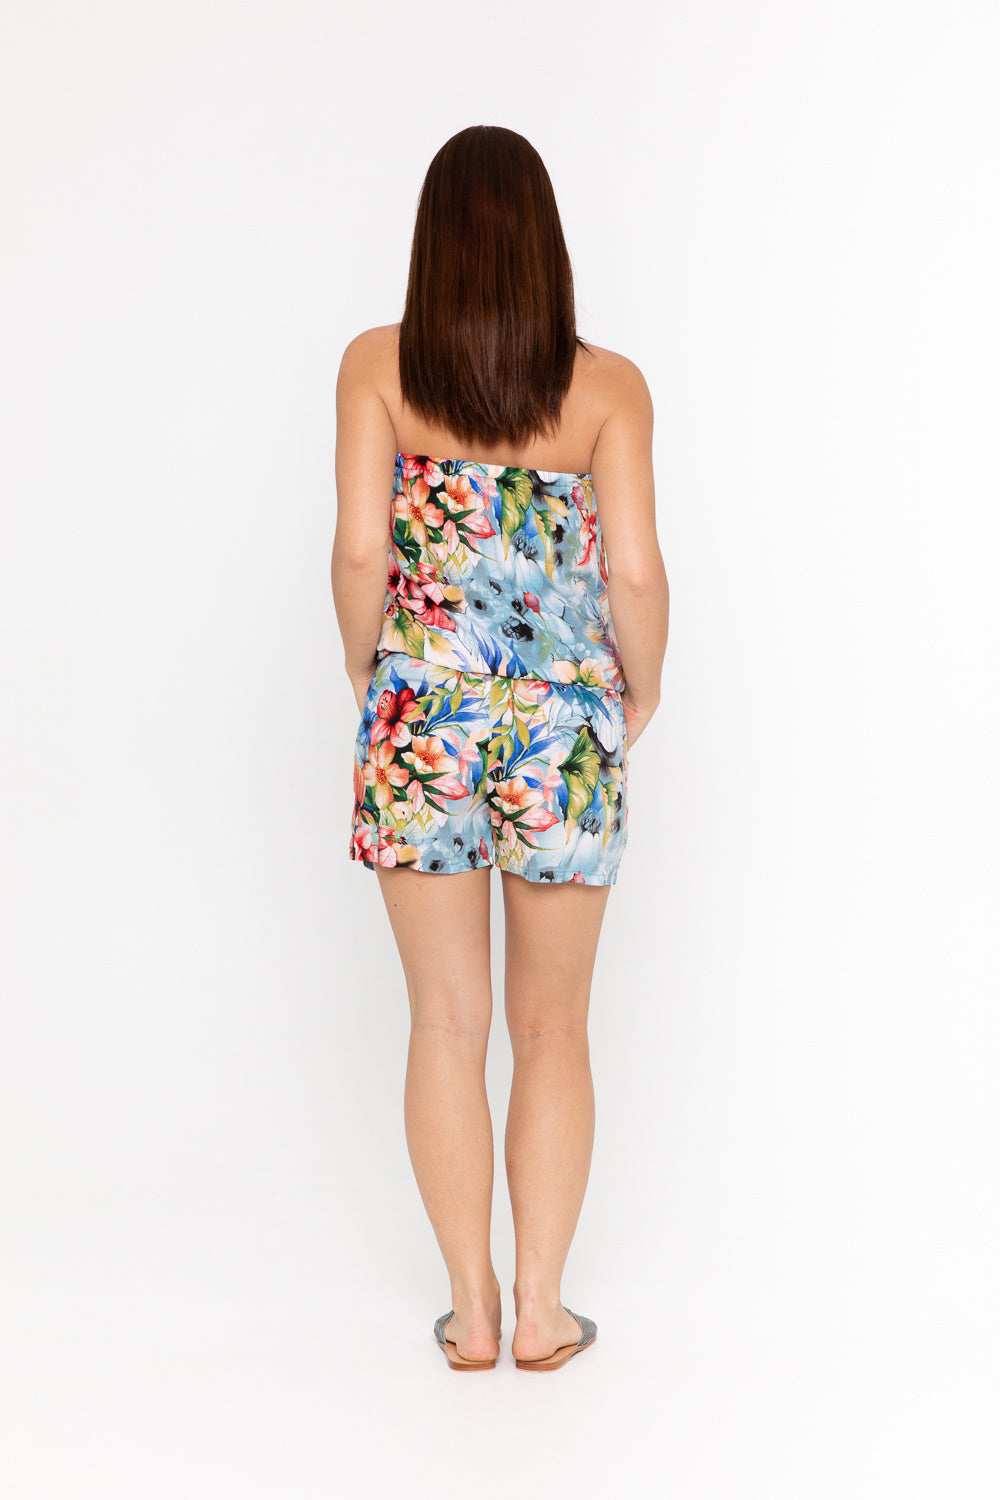 Playsuit Strapless - Beach Rose